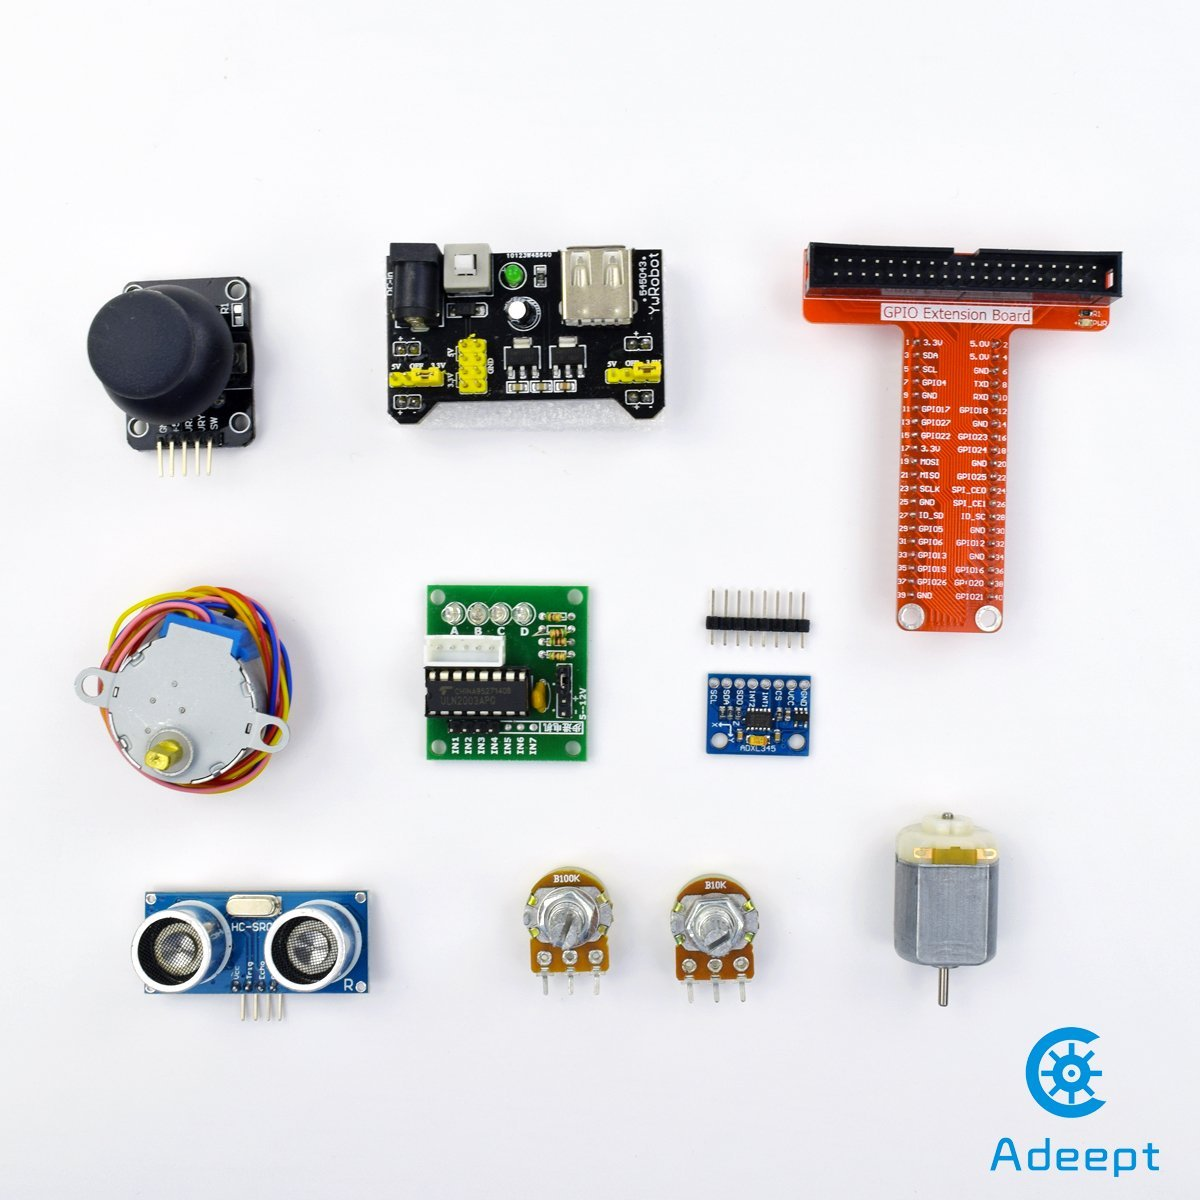 Adeept Rfid Starter Kit For Raspberry Pi 3 2 Model B Polarity Switch Element14 Stepper Motor Adxl345 40 Pin Gpio Extension Board Breadboard With C And Python